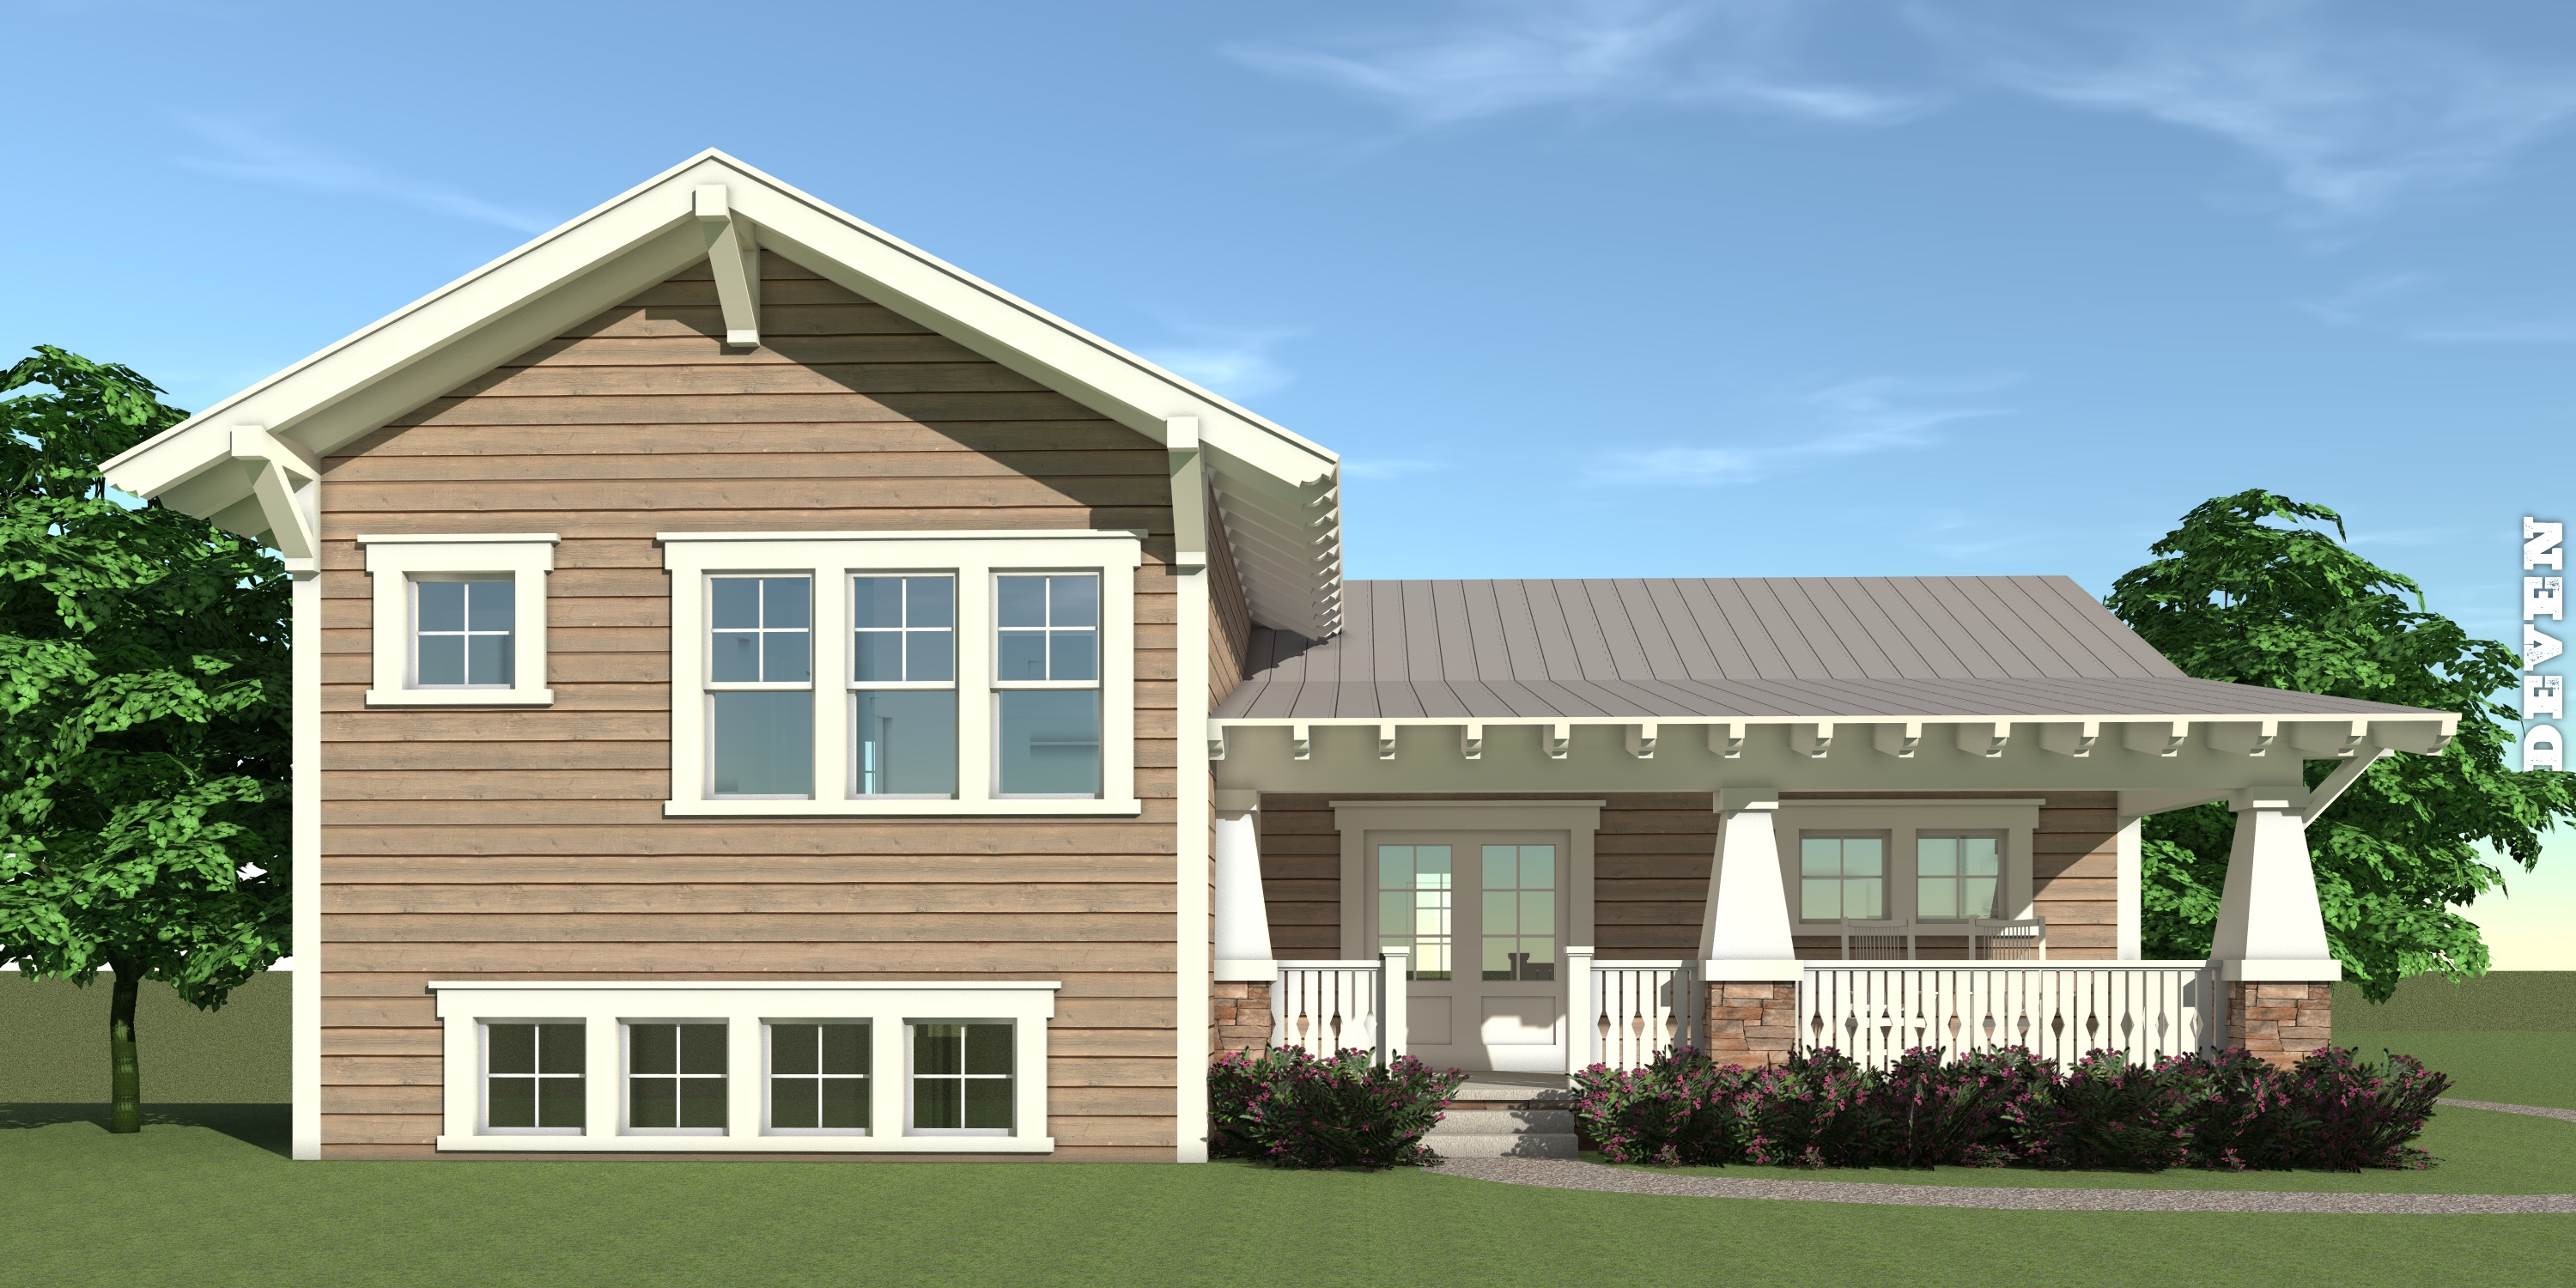 Deven House Plan by Tyree House Plans